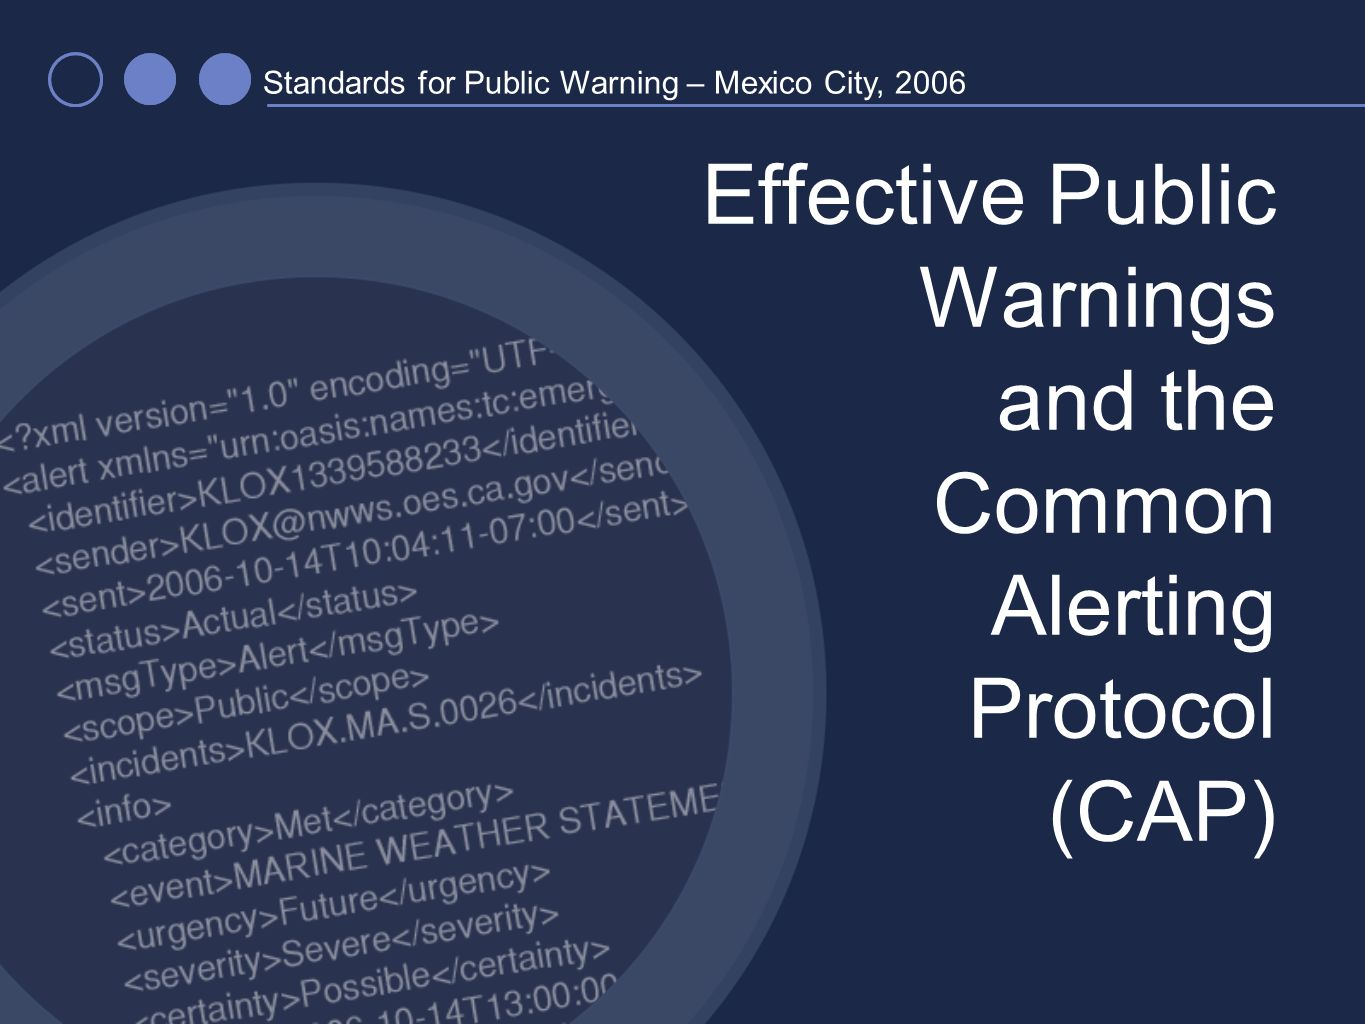 Effective Public Warnings and the Common Alerting Protocol (CAP) Standards for Public Warning – Mexico City, 2006